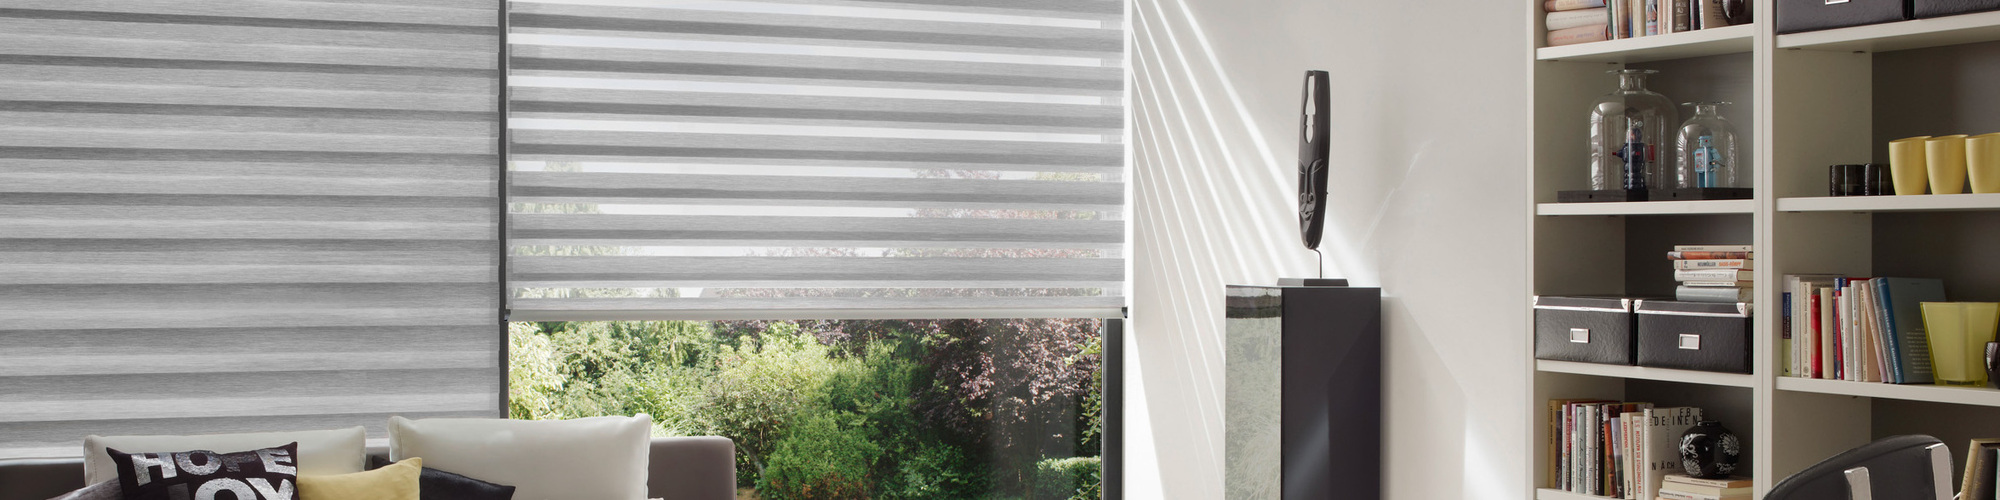 Example of the blinds available from Blind Revolution. Desktop image